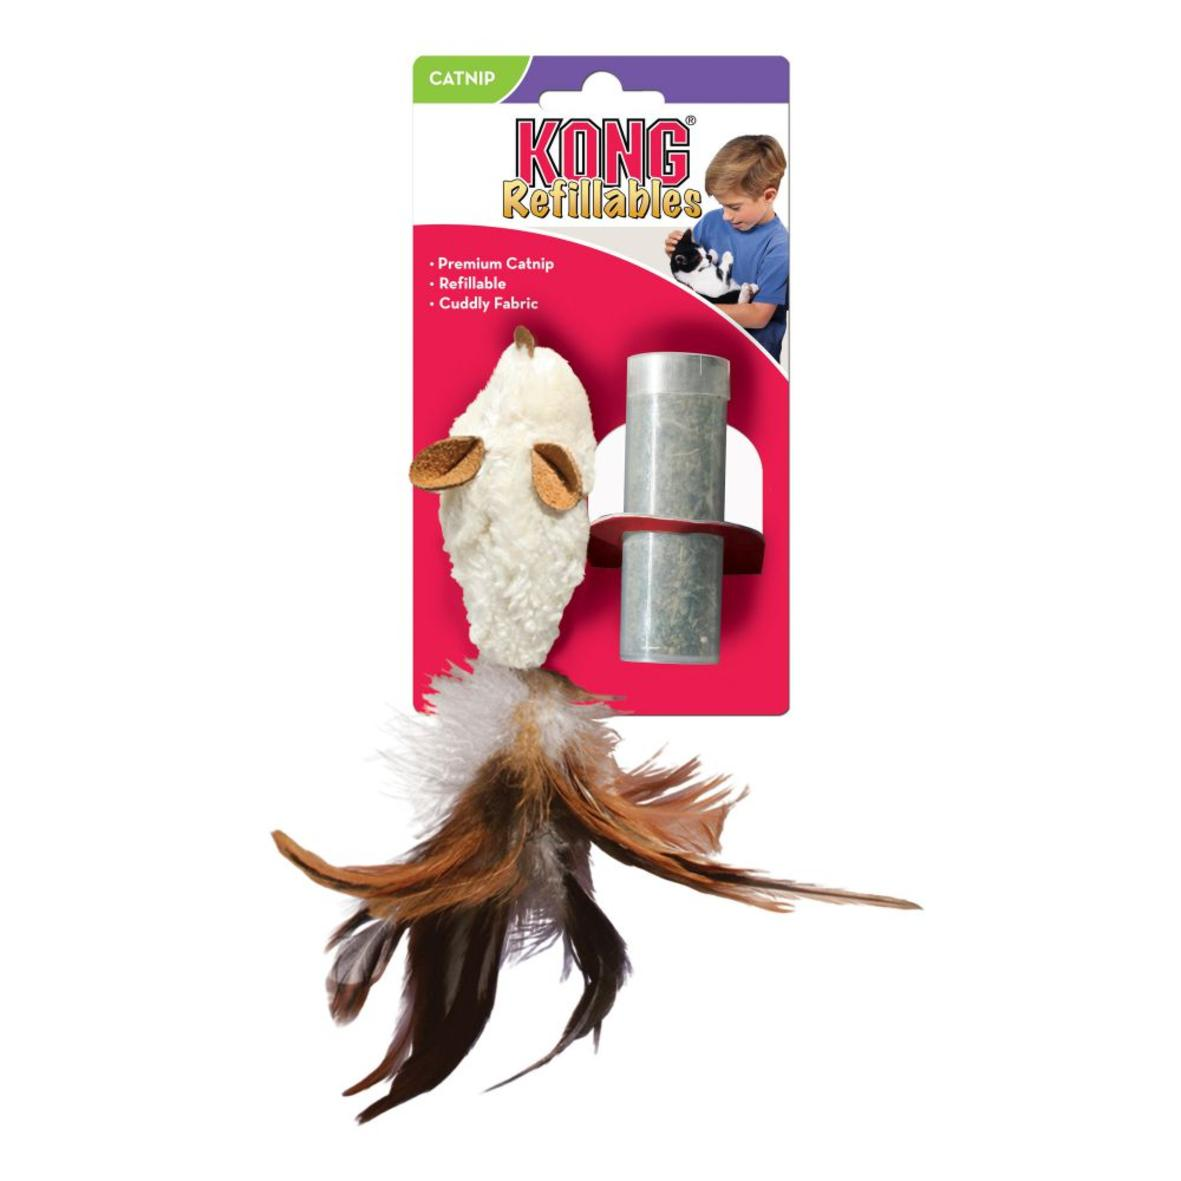 KONG Refillables Feather Mouse with Catnip